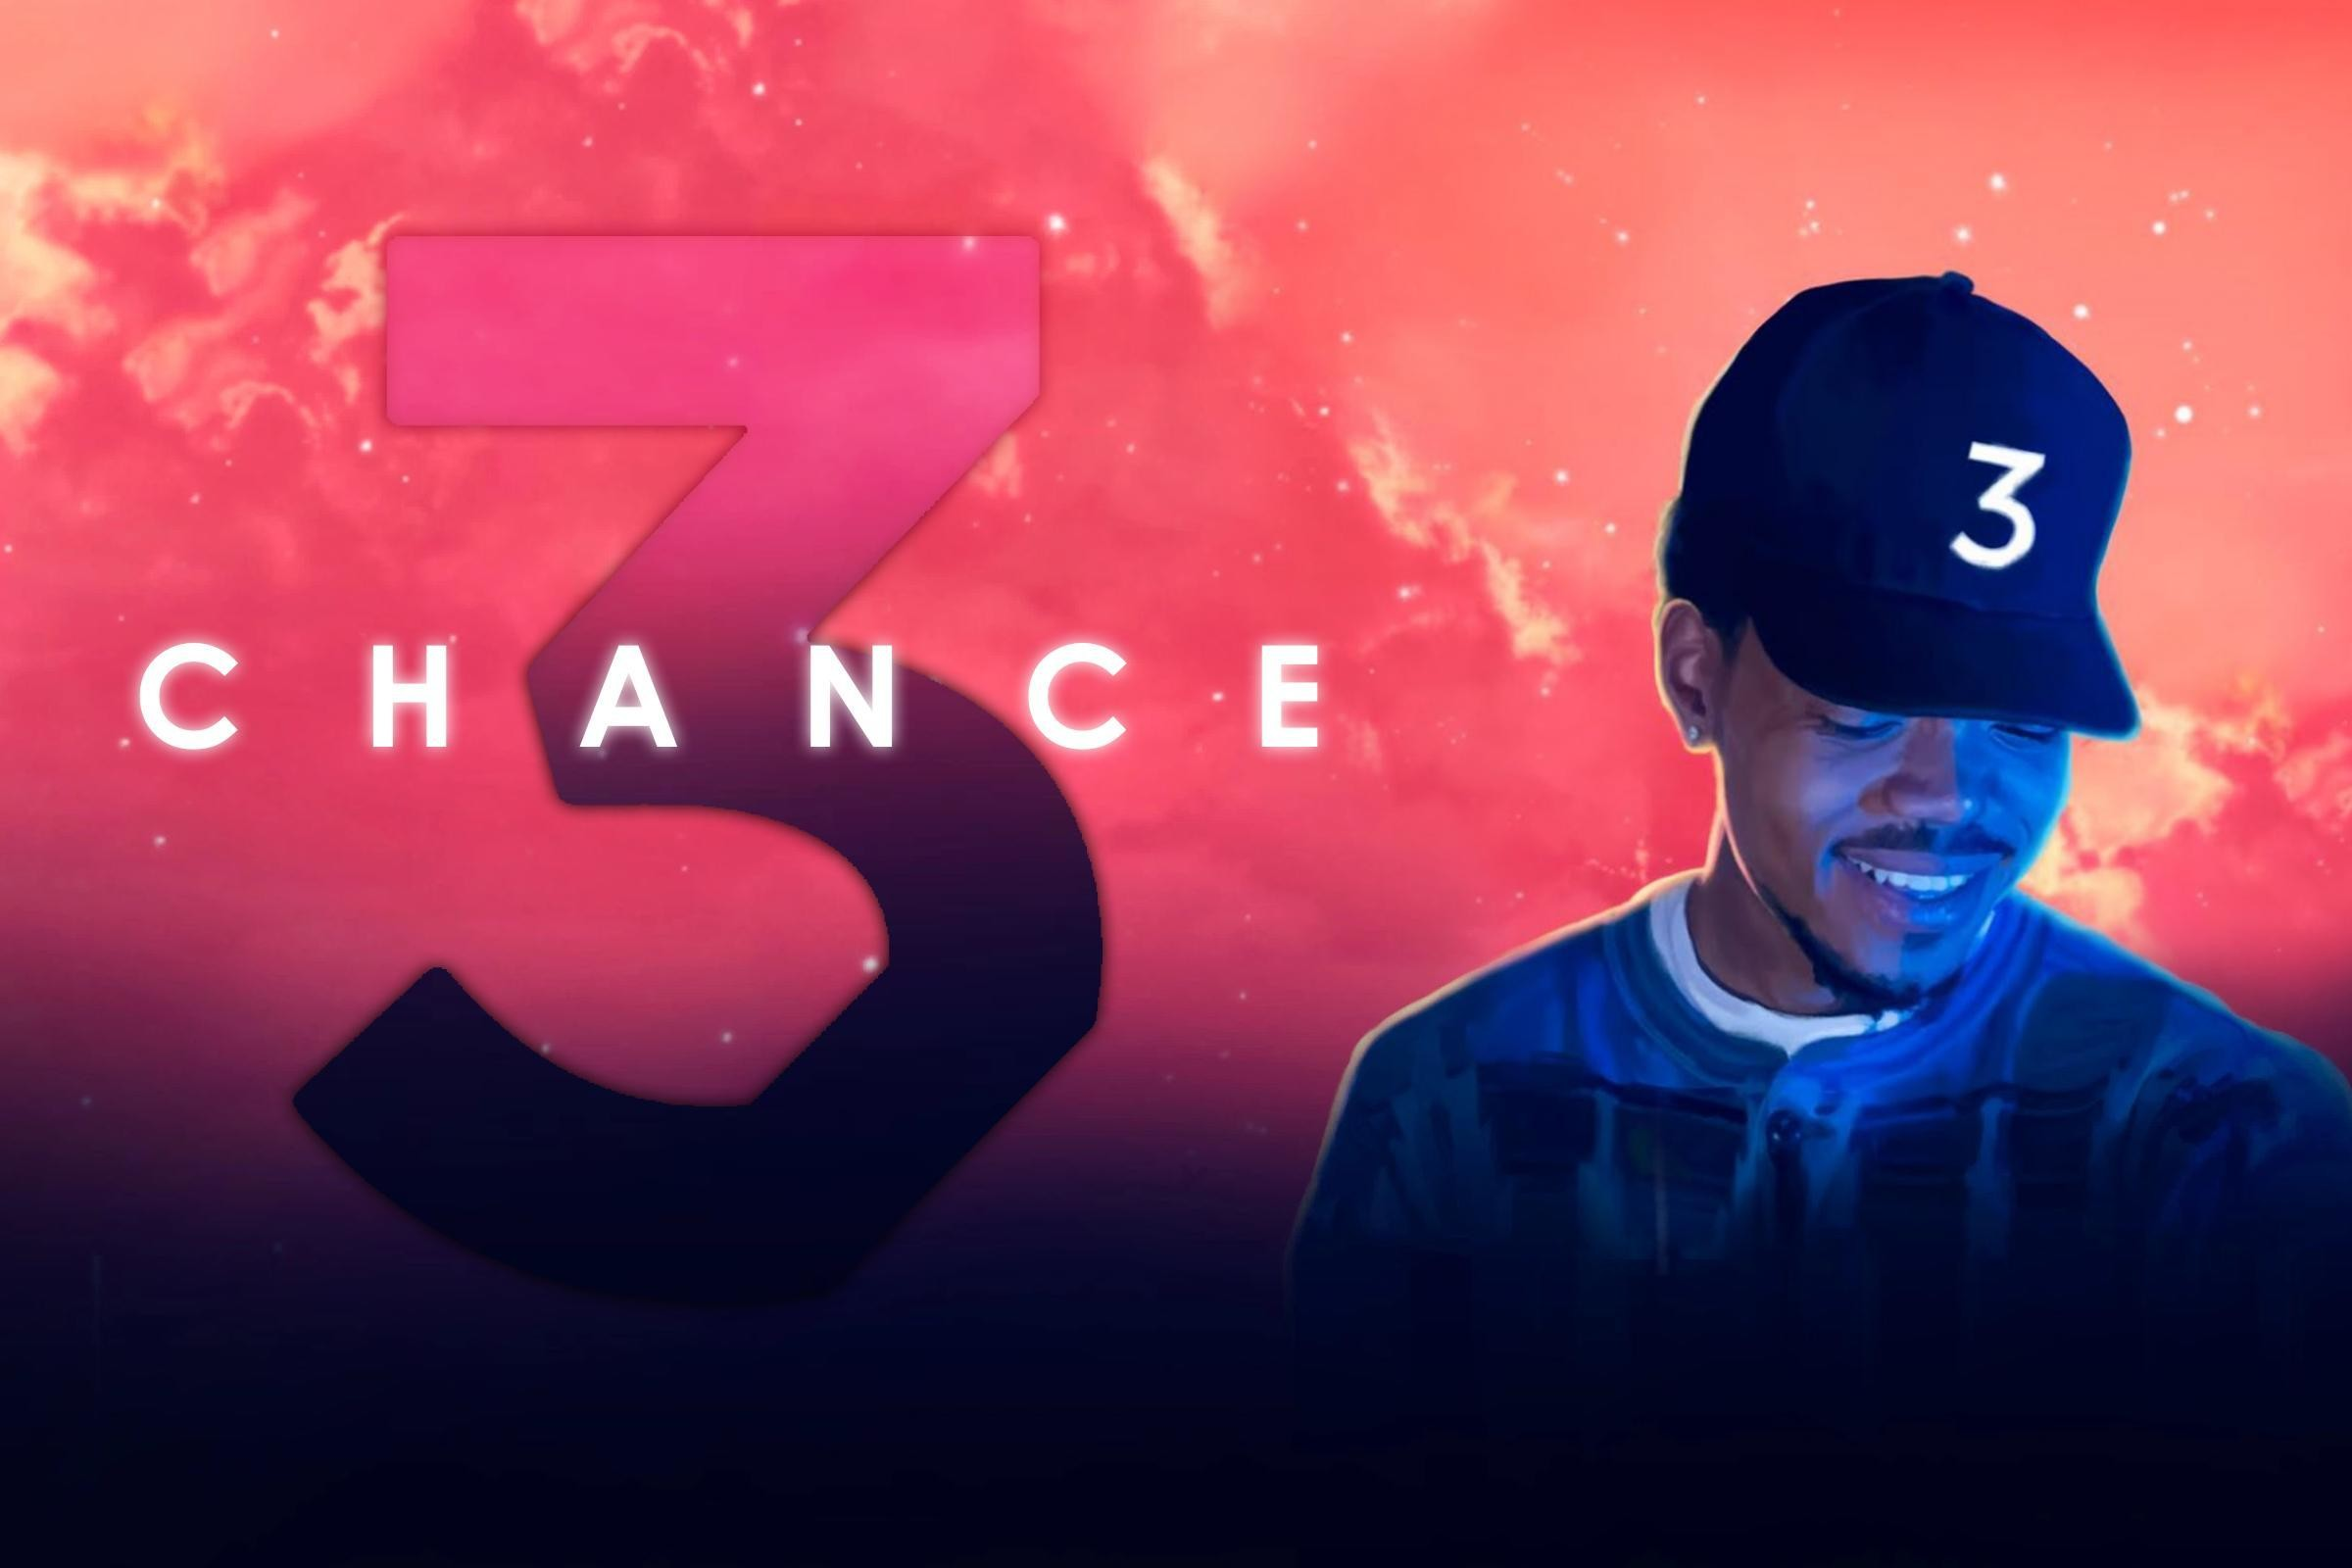 2400x1600 Download Best HD Chance The Rapper Wallpaper | HD Wallpaper